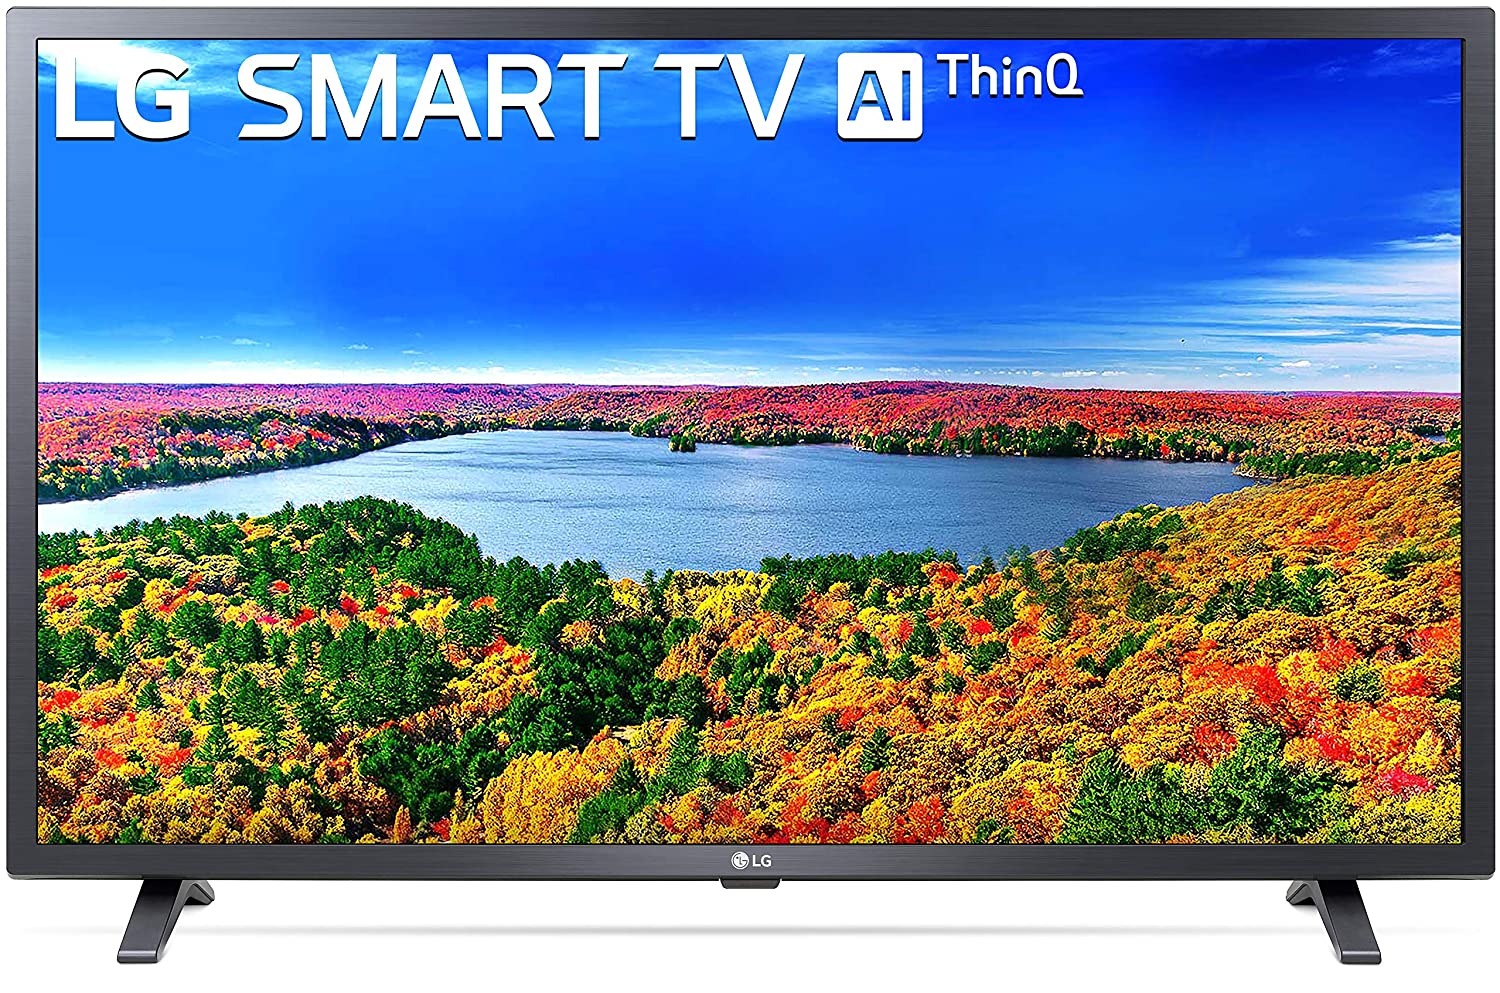 LG (32 inches) Smart LED TV with magic voice remote